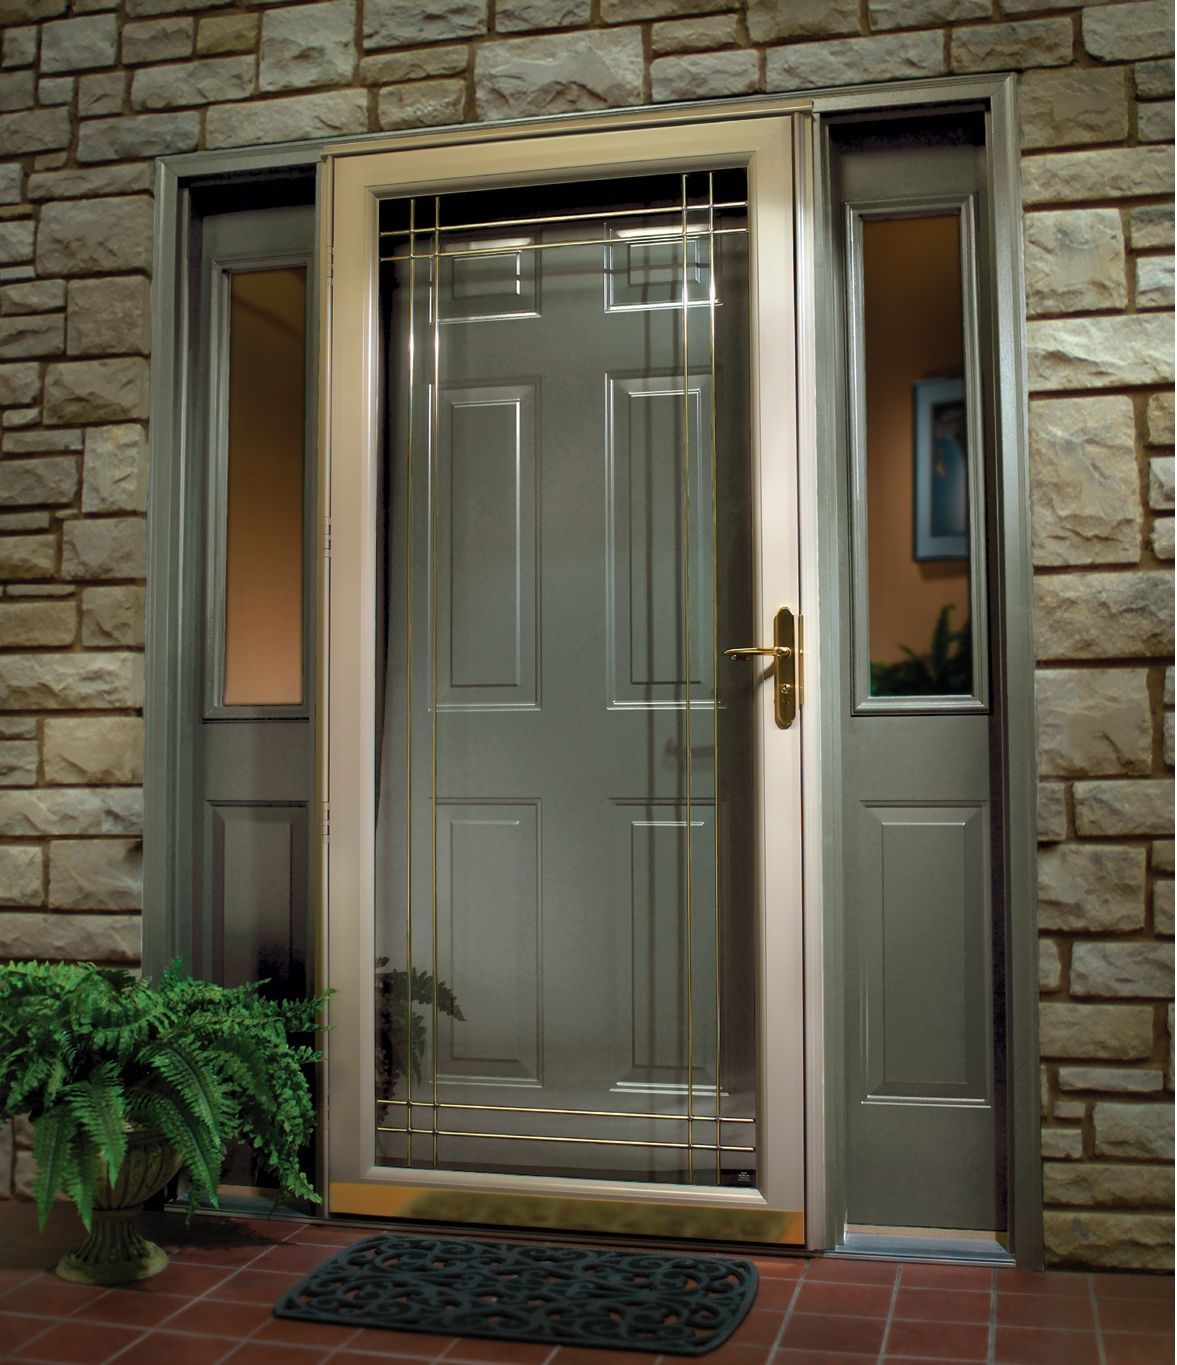 Exterior doors for homes front door ideas front entry for Entry door with window